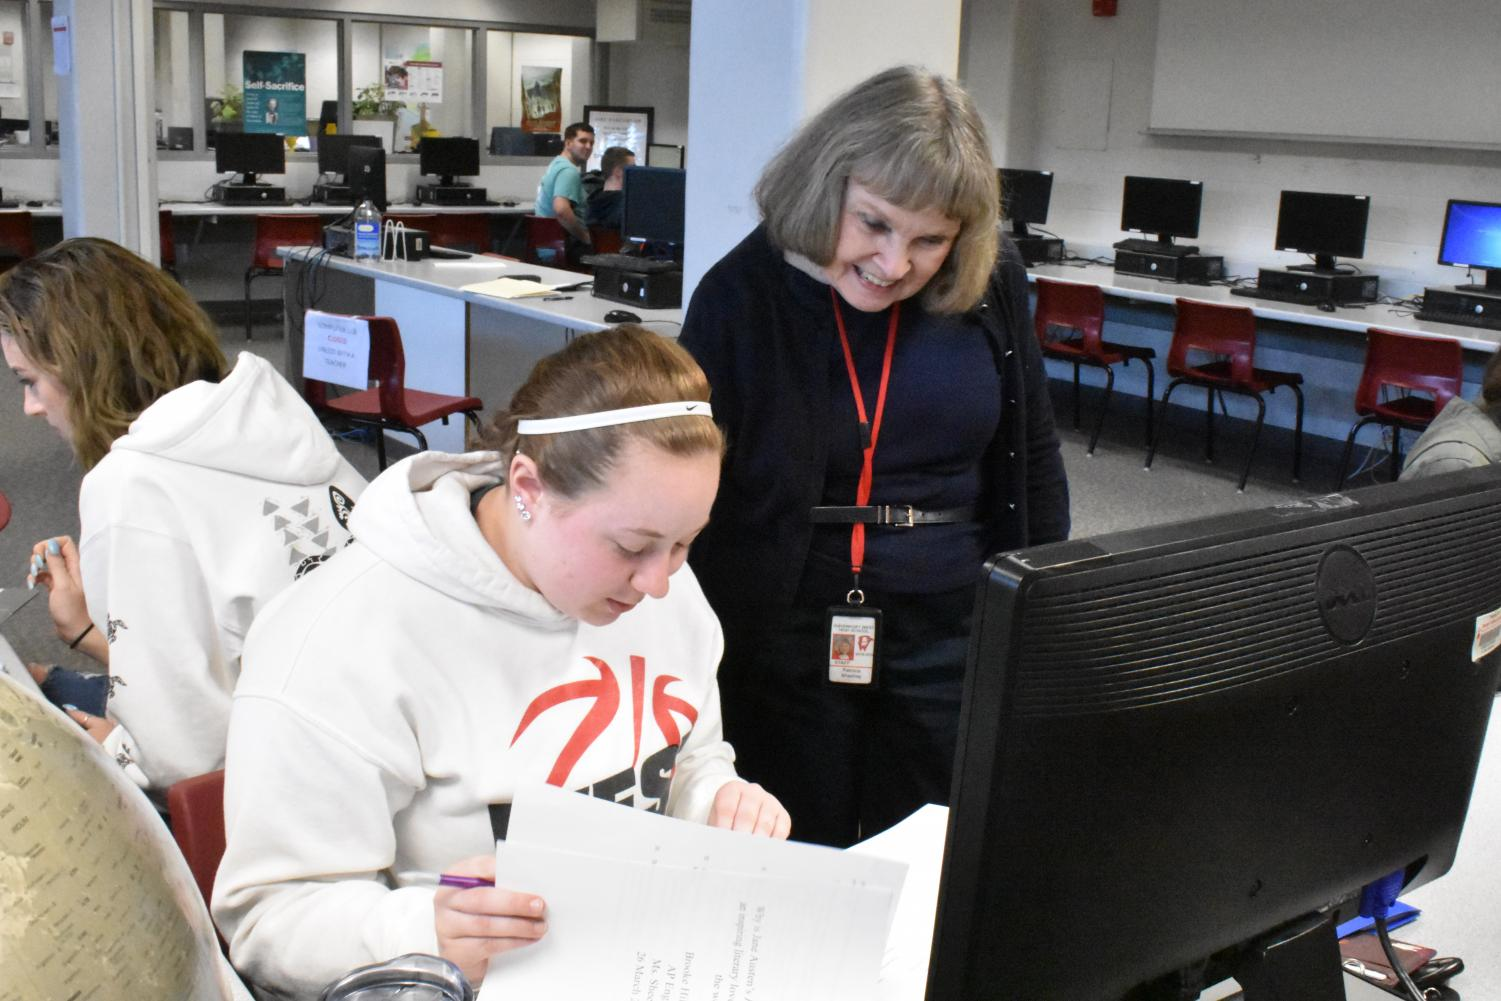 "Language arts teacher Pat Sheehey assists senior Brooke Hildebrant with paper revisions sporting a smile. ""I think it is very important to develop skills in English, and to write well, speak well, and to read,"" Sheehey said about the subject she has been teaching for the past 50 years."